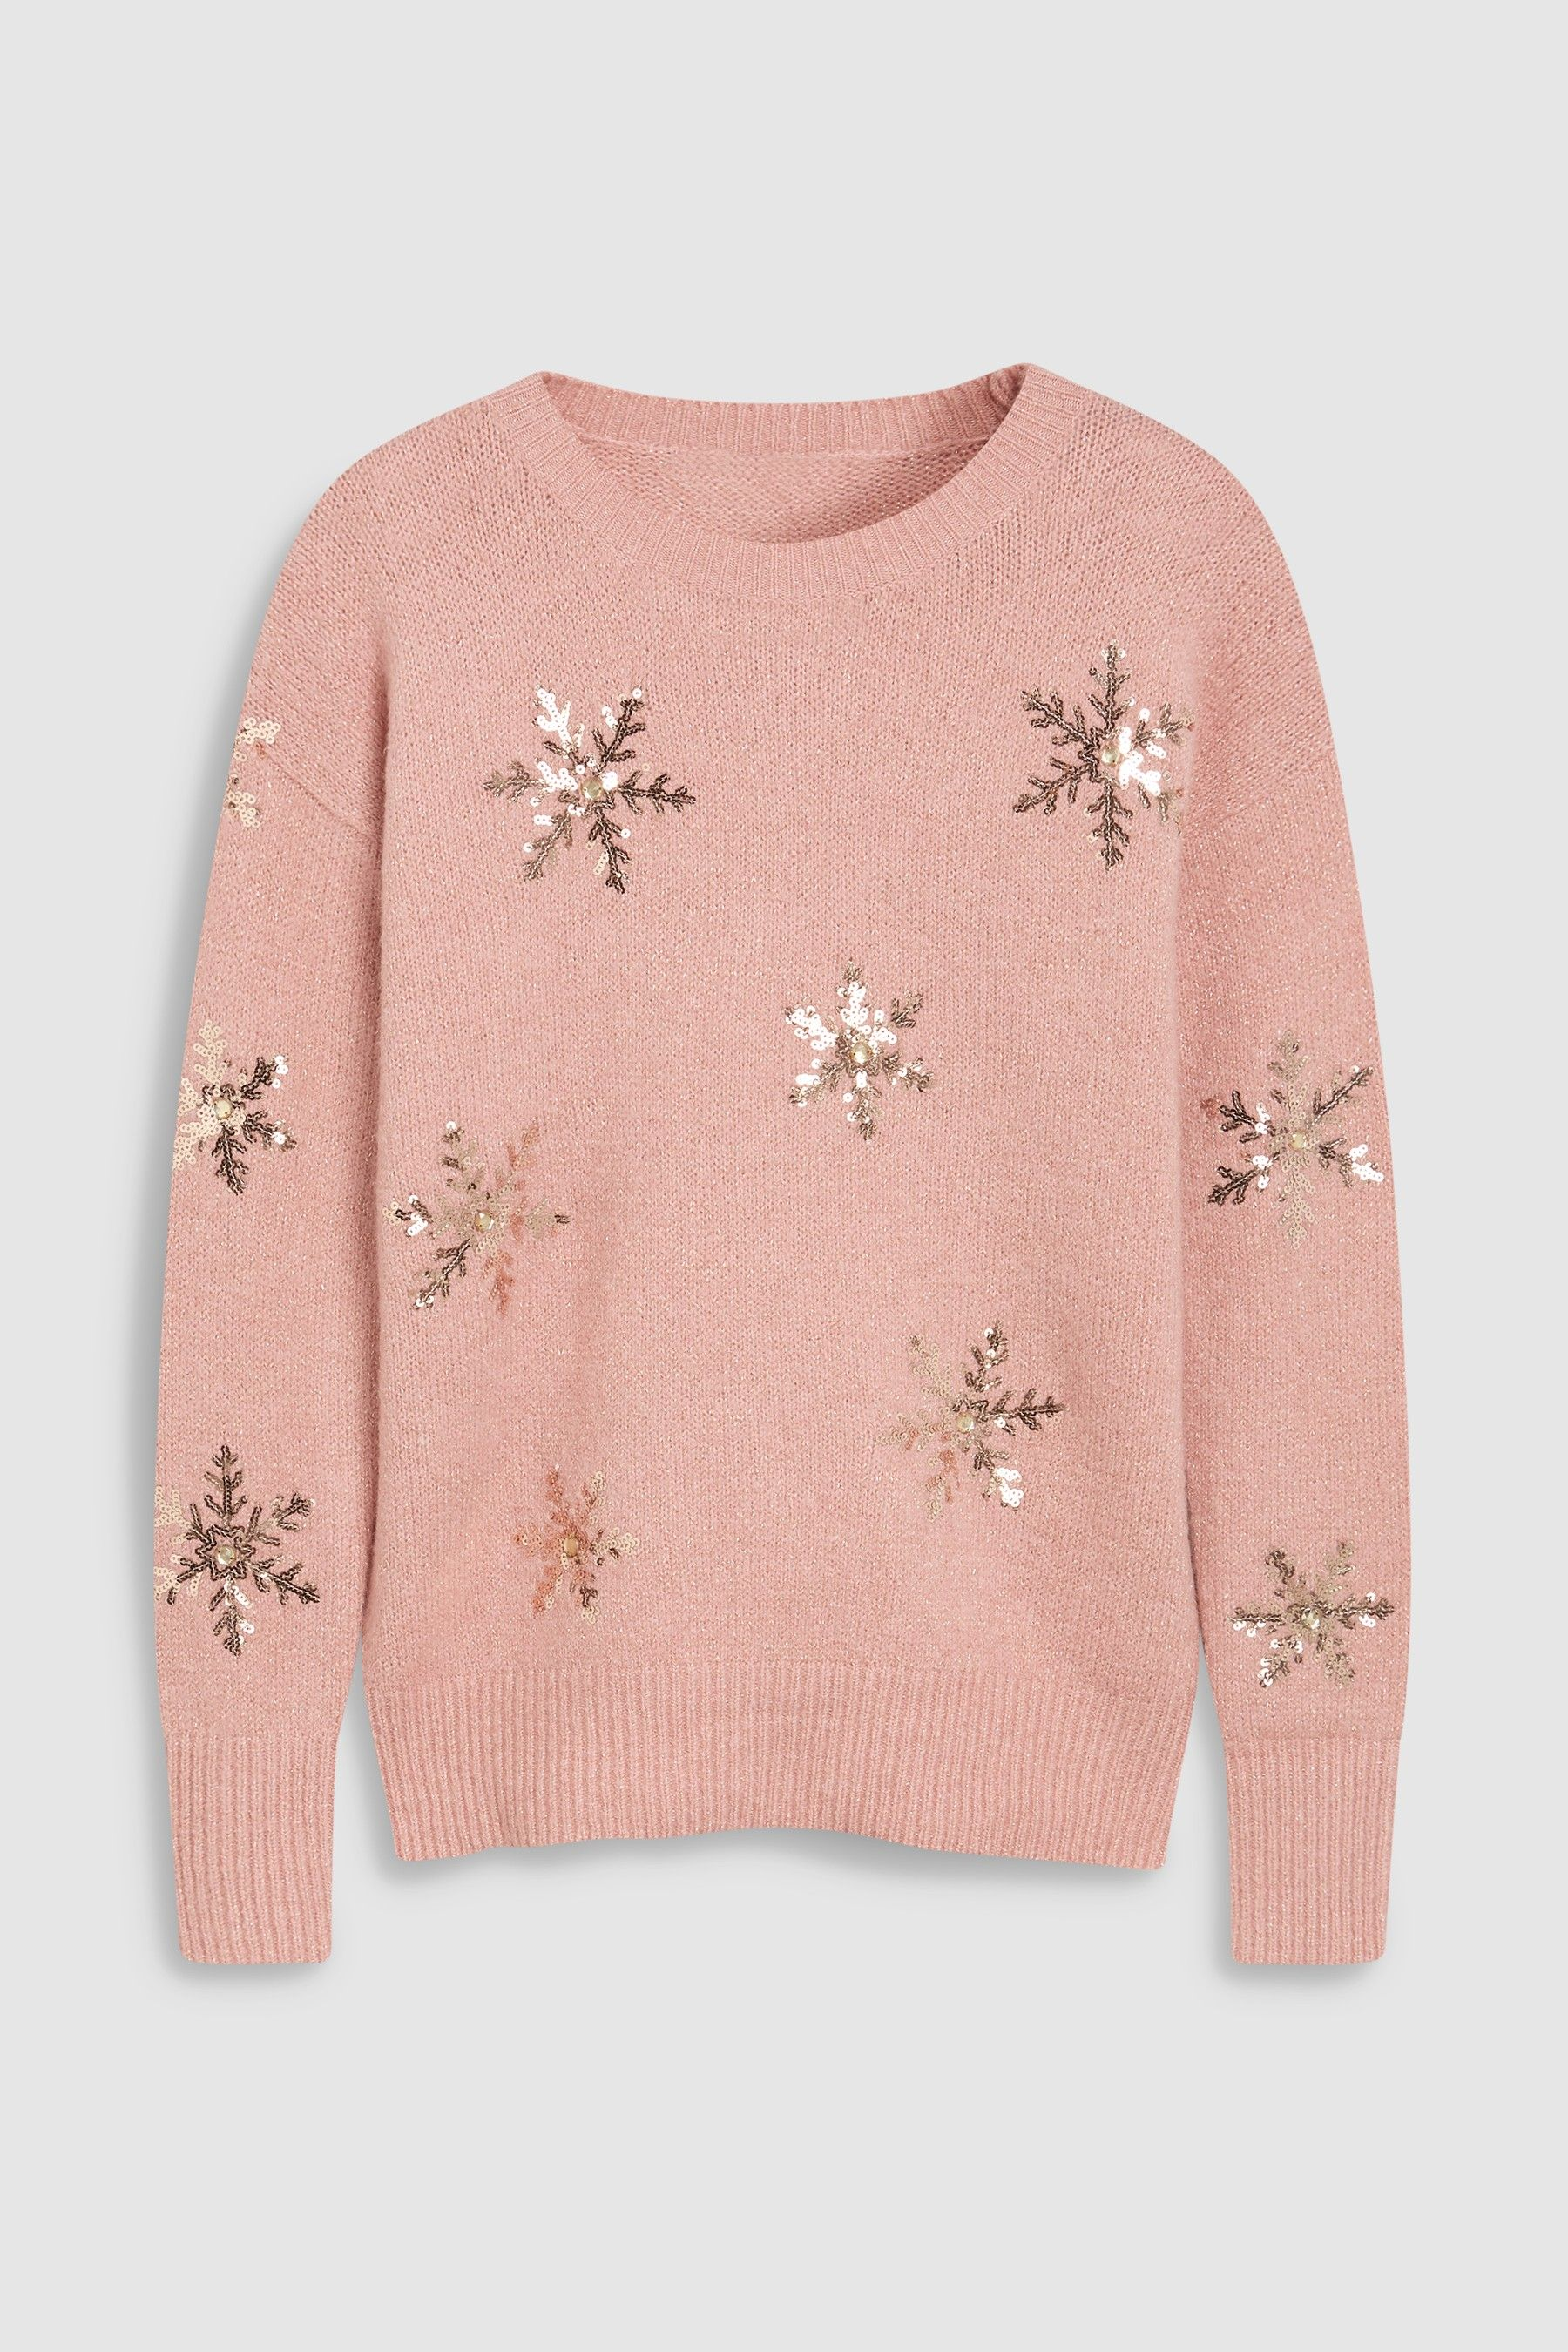 d9b05f9162a31 Womens Next Blush Sequin Snowflake Sweater - Pink | Products ...